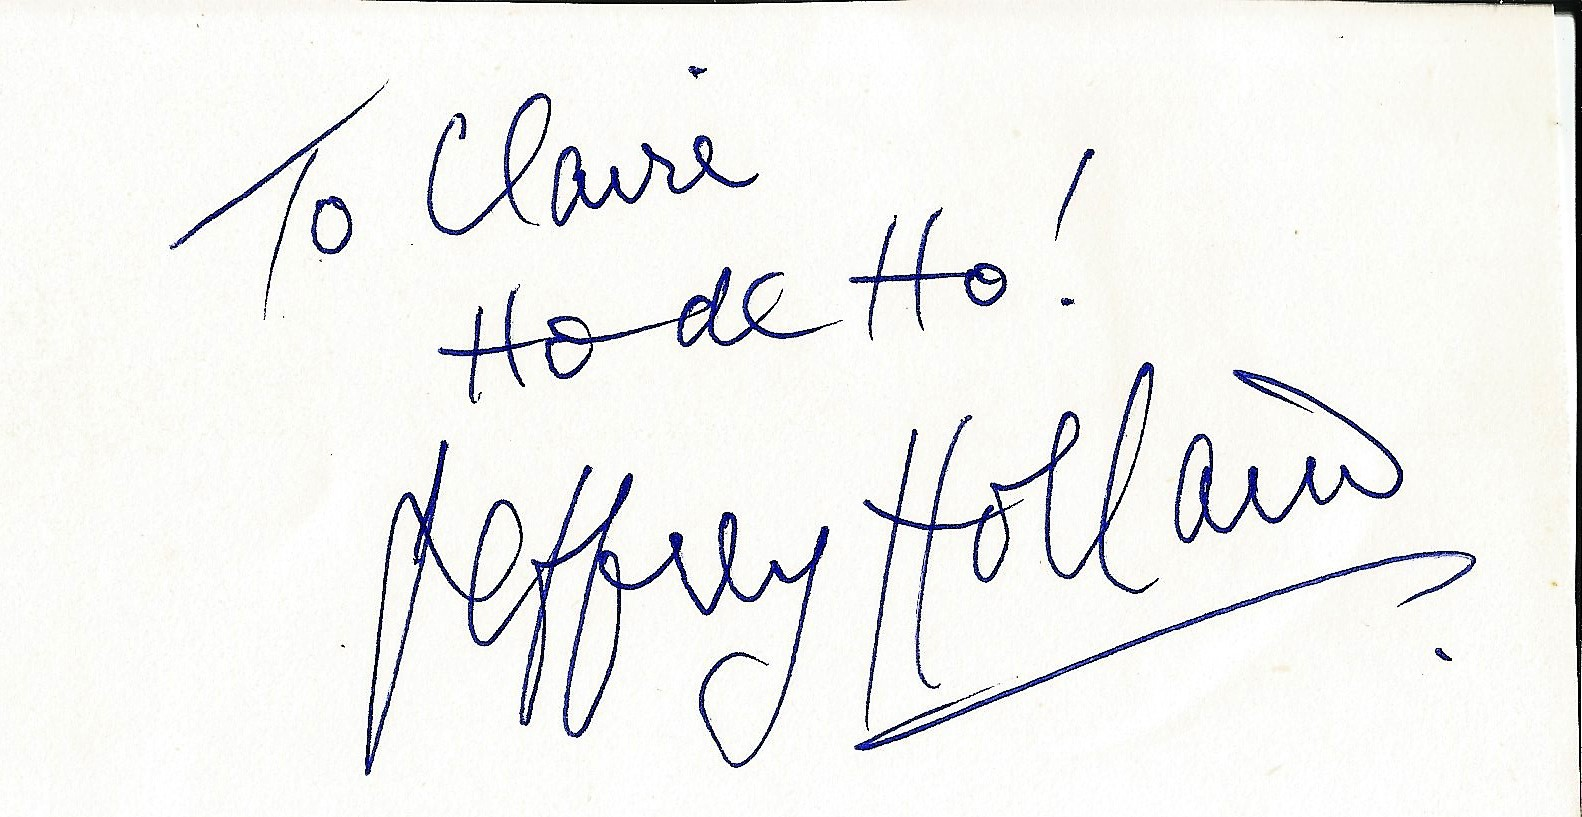 Jeffrey Holland 3x5 signed and dedicated page. Holland is an English actor well known for roles in